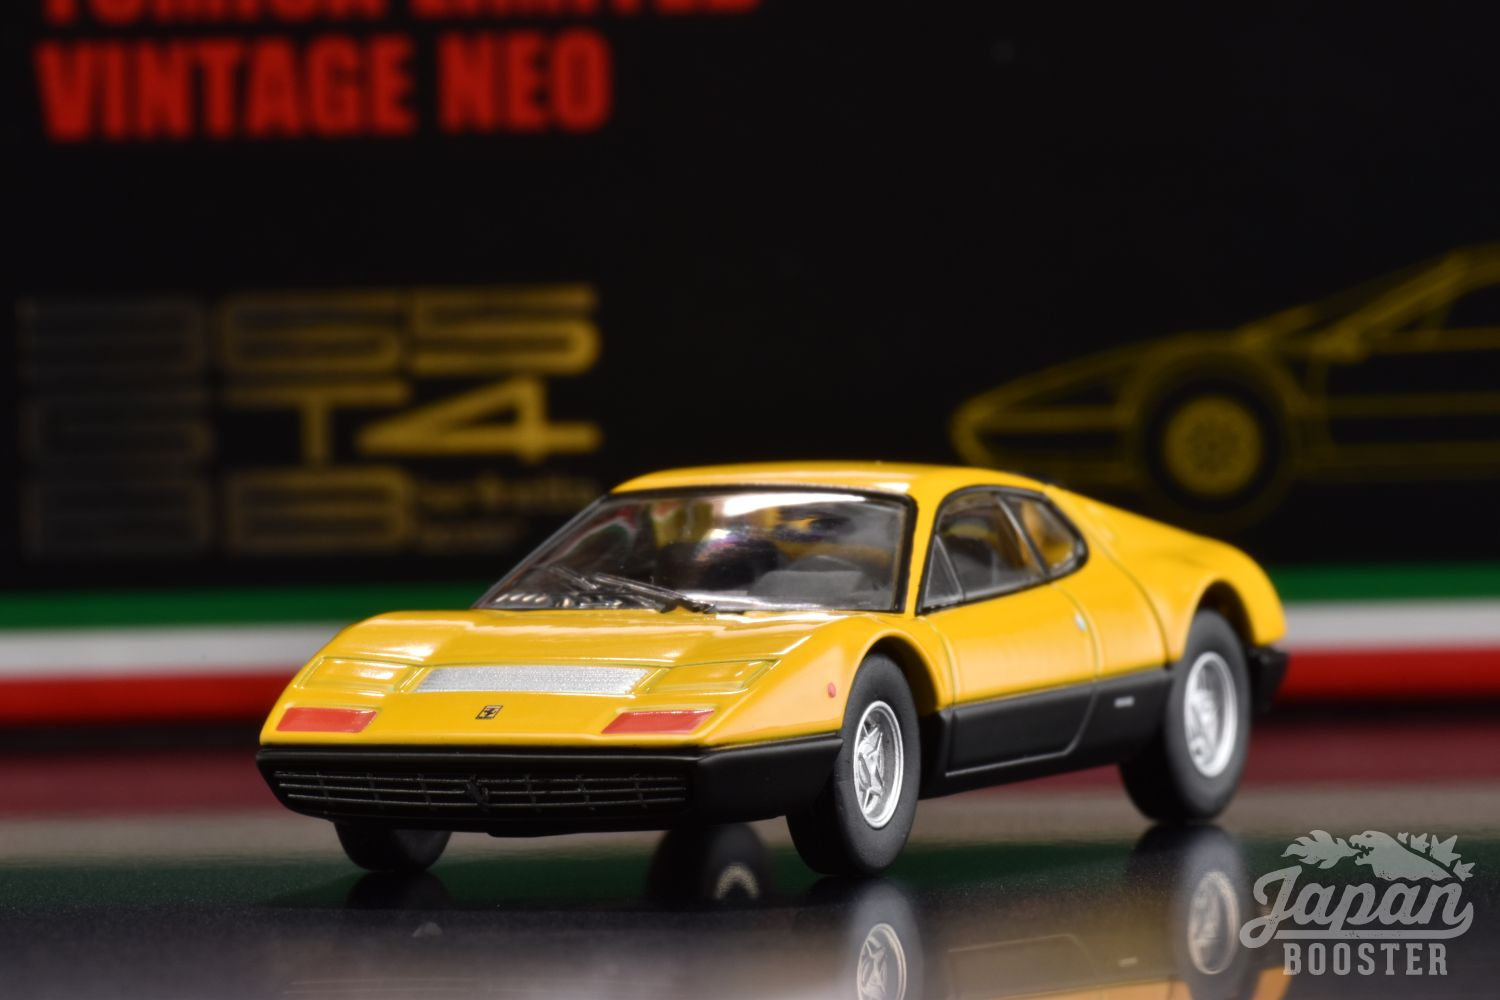 LV-FERRARI 365 GT4 BB YELLOW